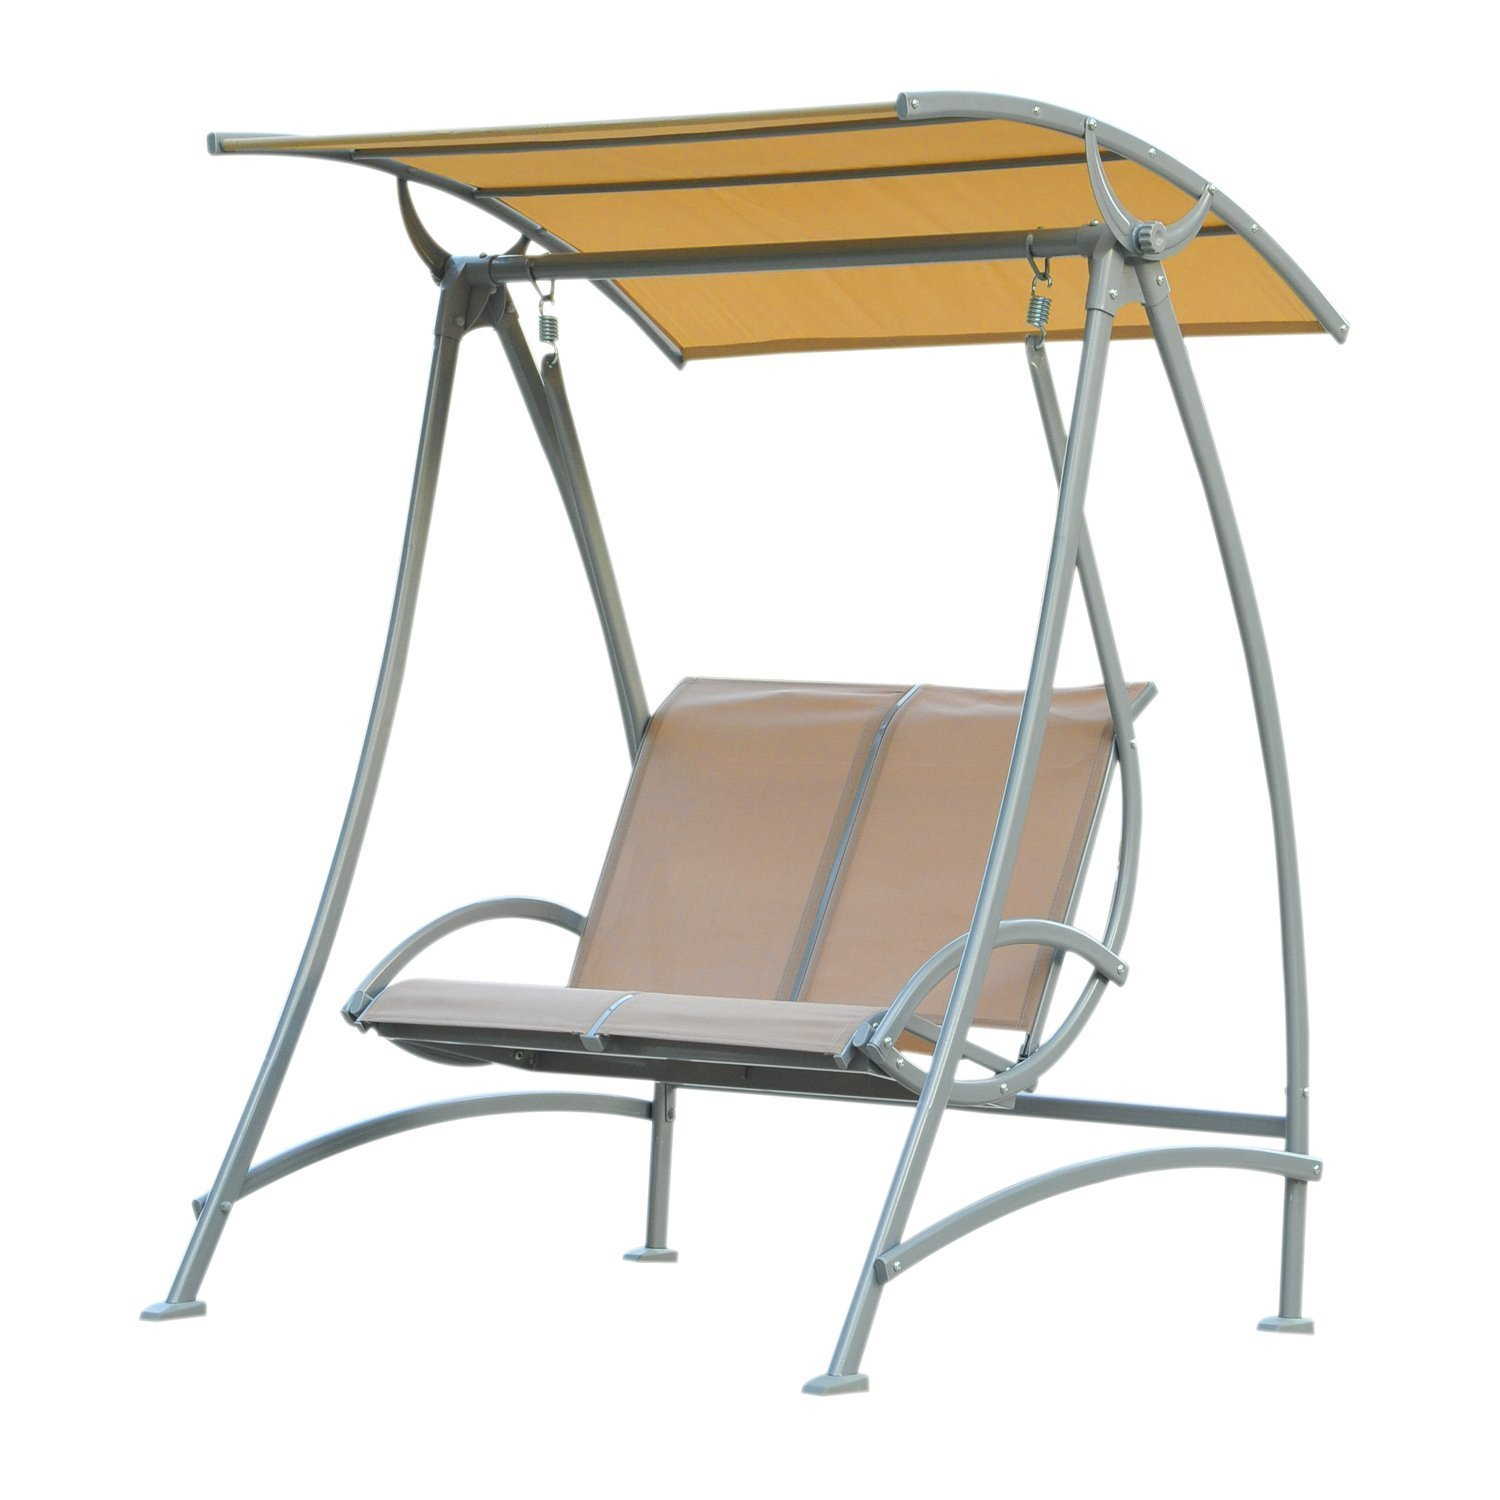 Outsunny 2 Seater Garden Swing Chair Lounger Seat Bench With Metal